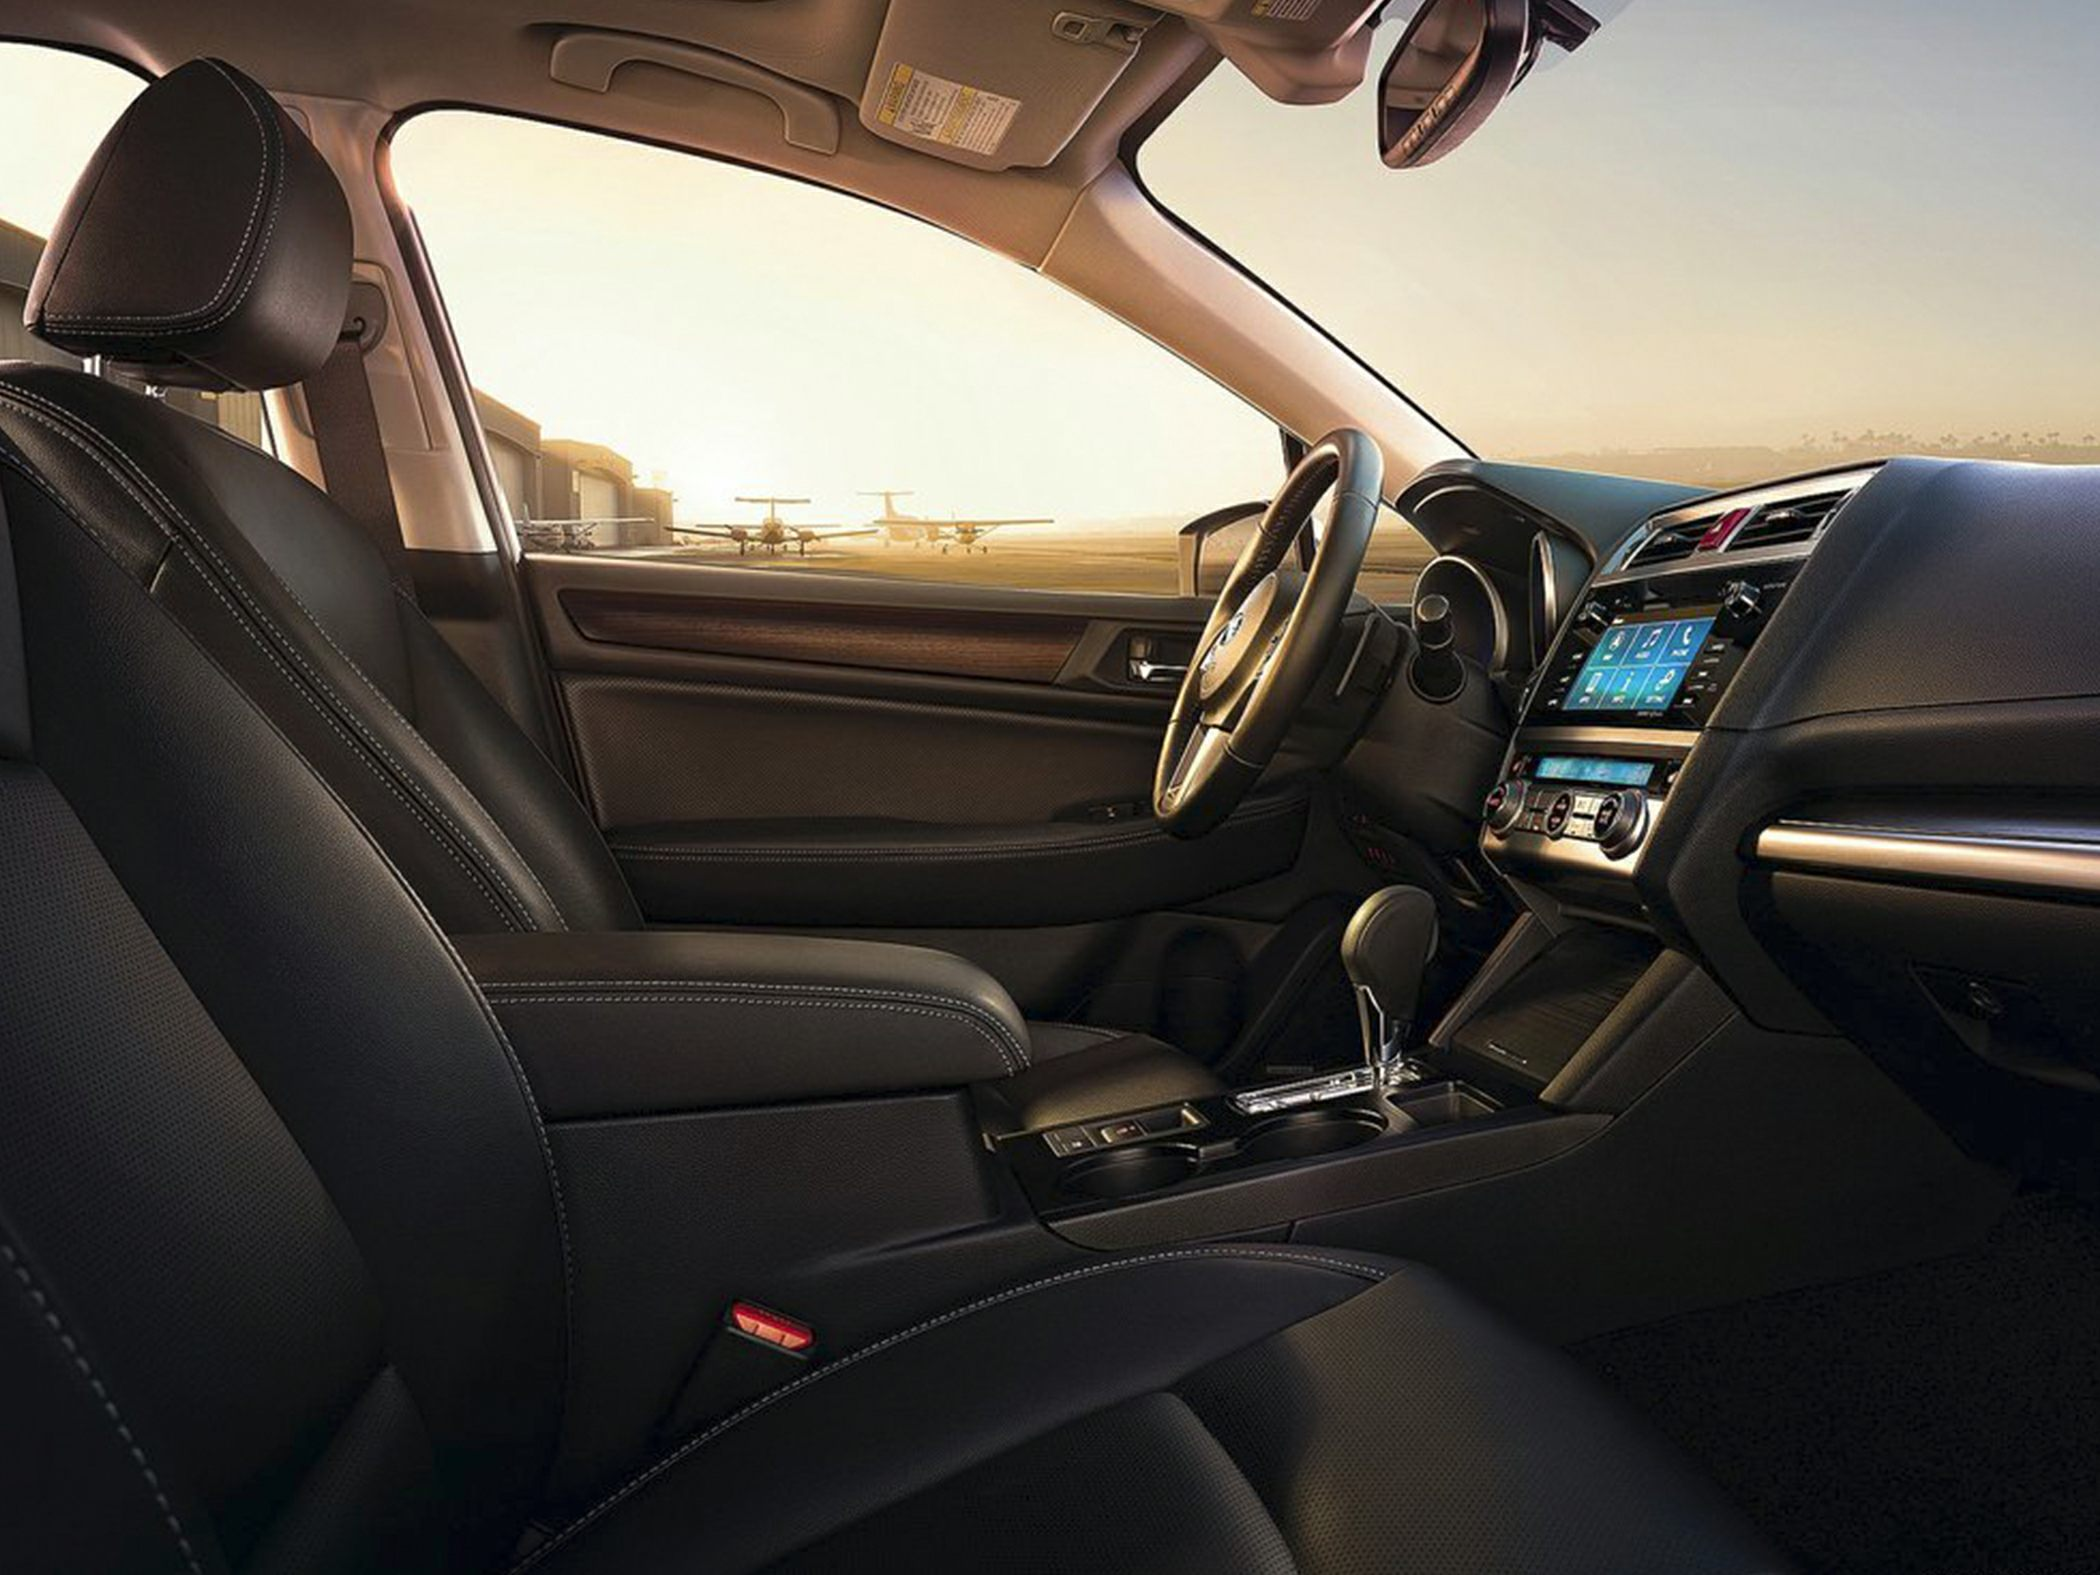 2017 subaru legacy deals prices incentives leases overview 25i sport vanachro Images